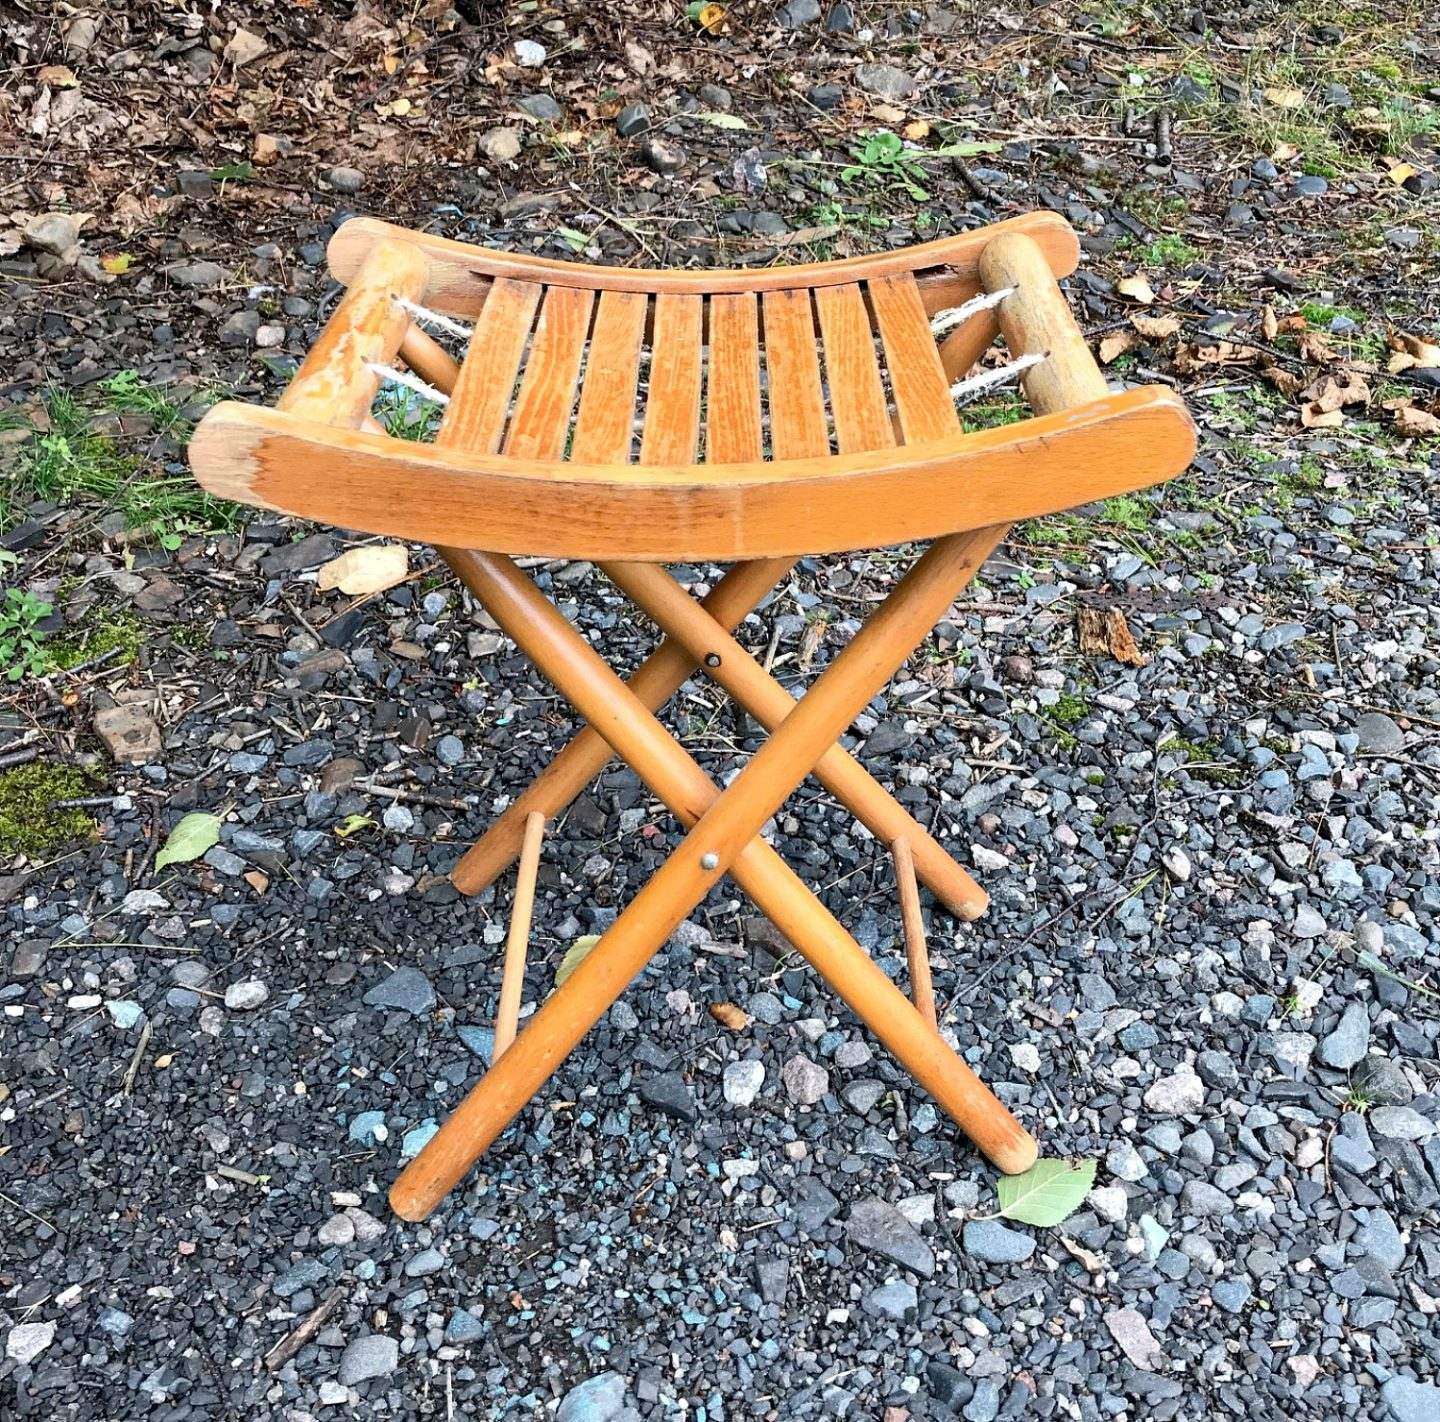 Retro Folding Stool Makeover | Before + After | Budget-friendly Furniture Makeover Vintage Upcycle Spray Paint Makeover #furnituremakeover #spraypaint #vintage